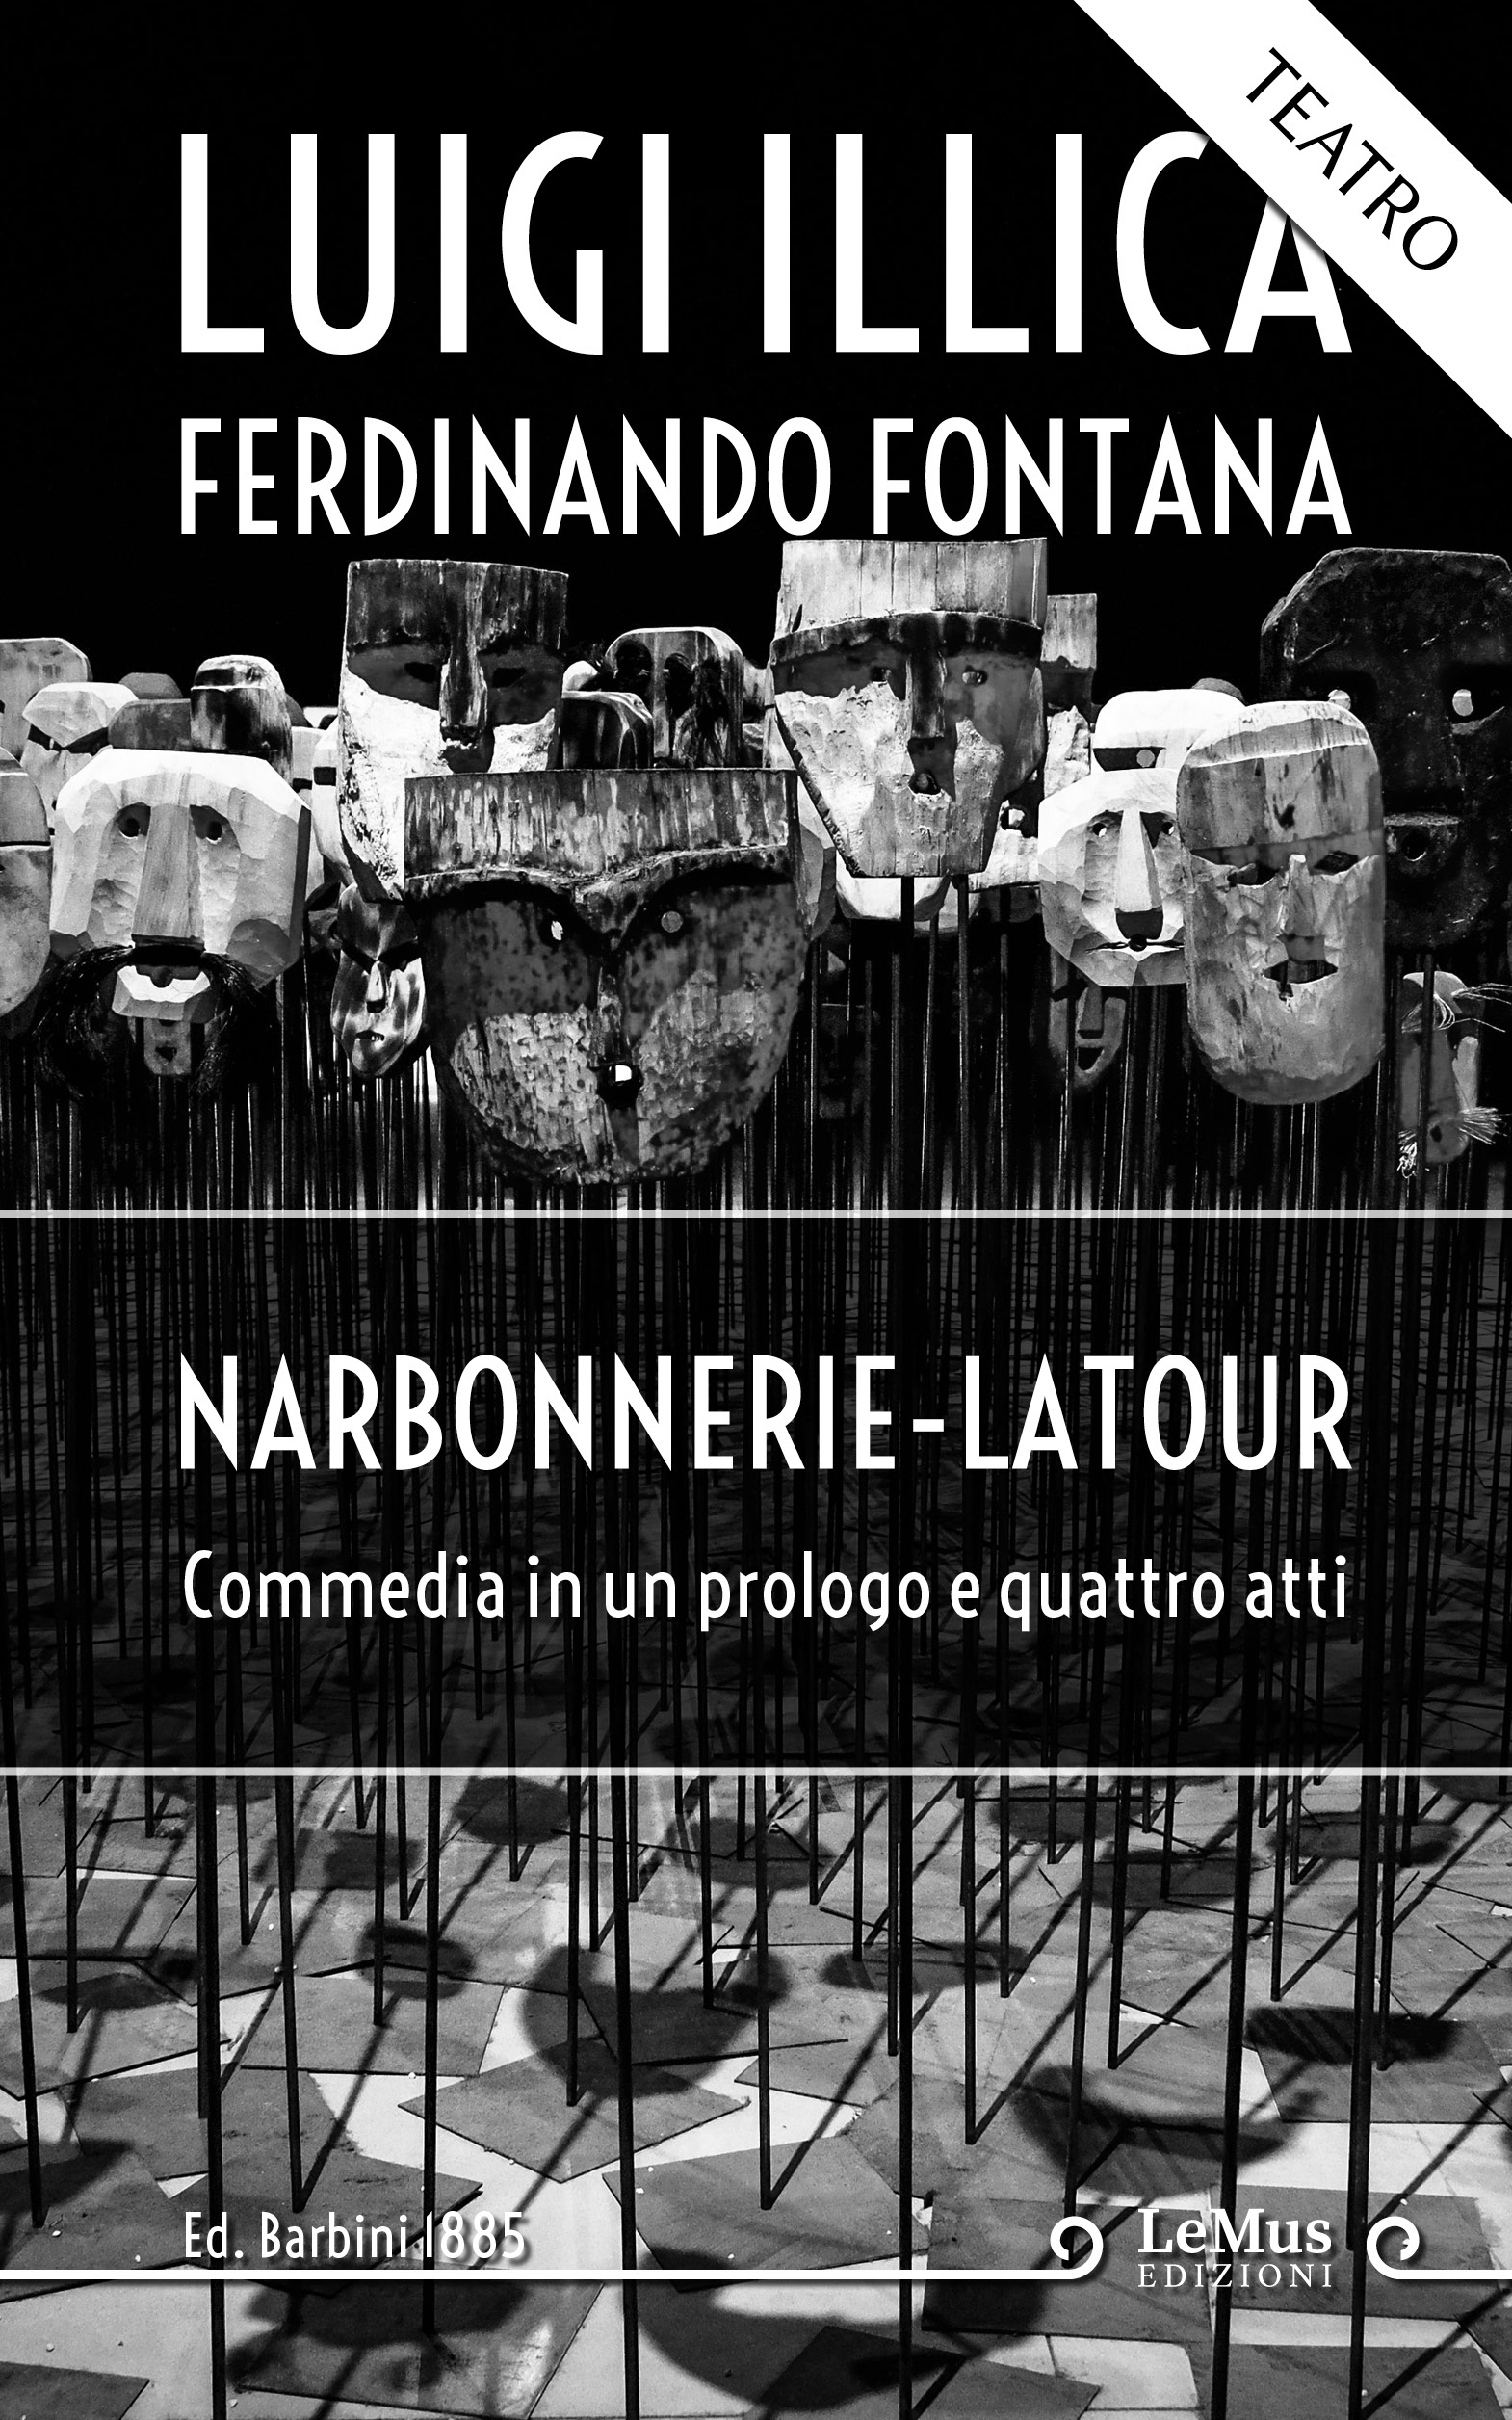 EBOOK-ILLICA-NARBONNERIE-LATOUR